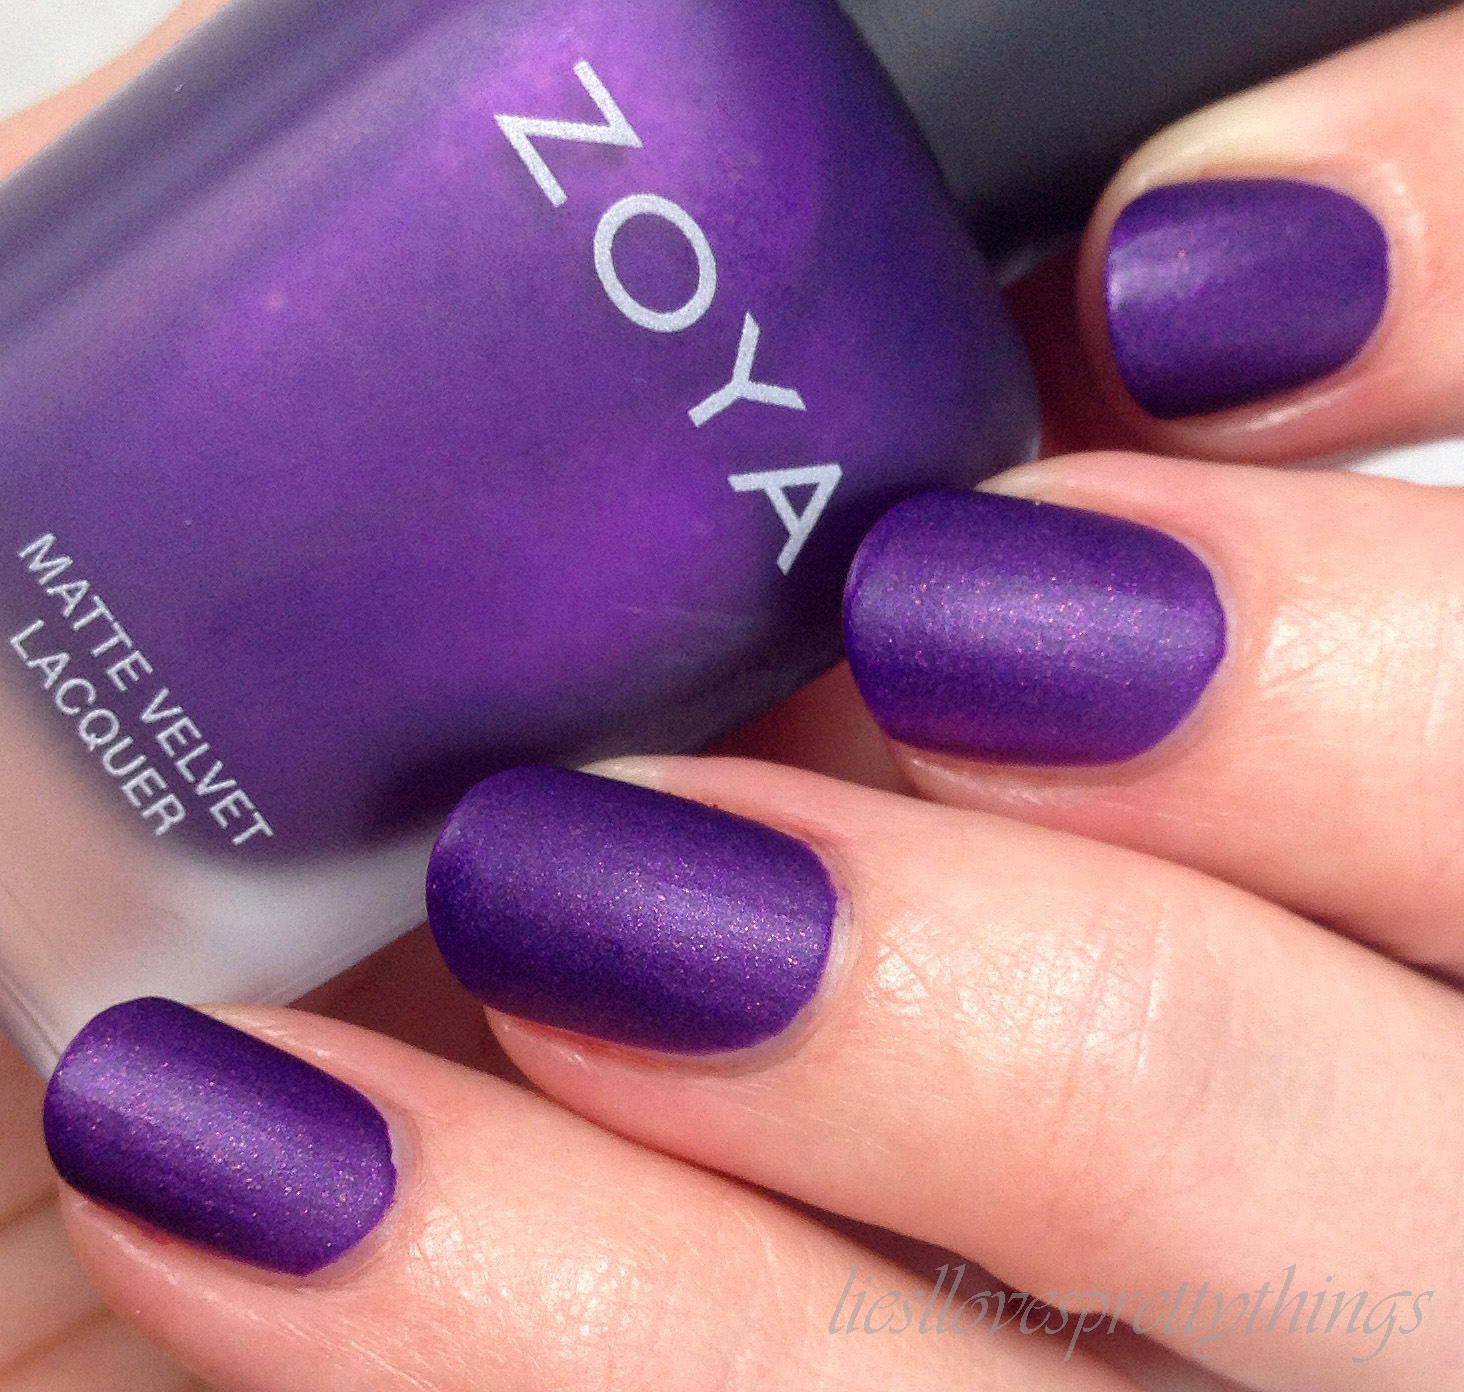 Zoya  Savita Matte Velvets swatch and review